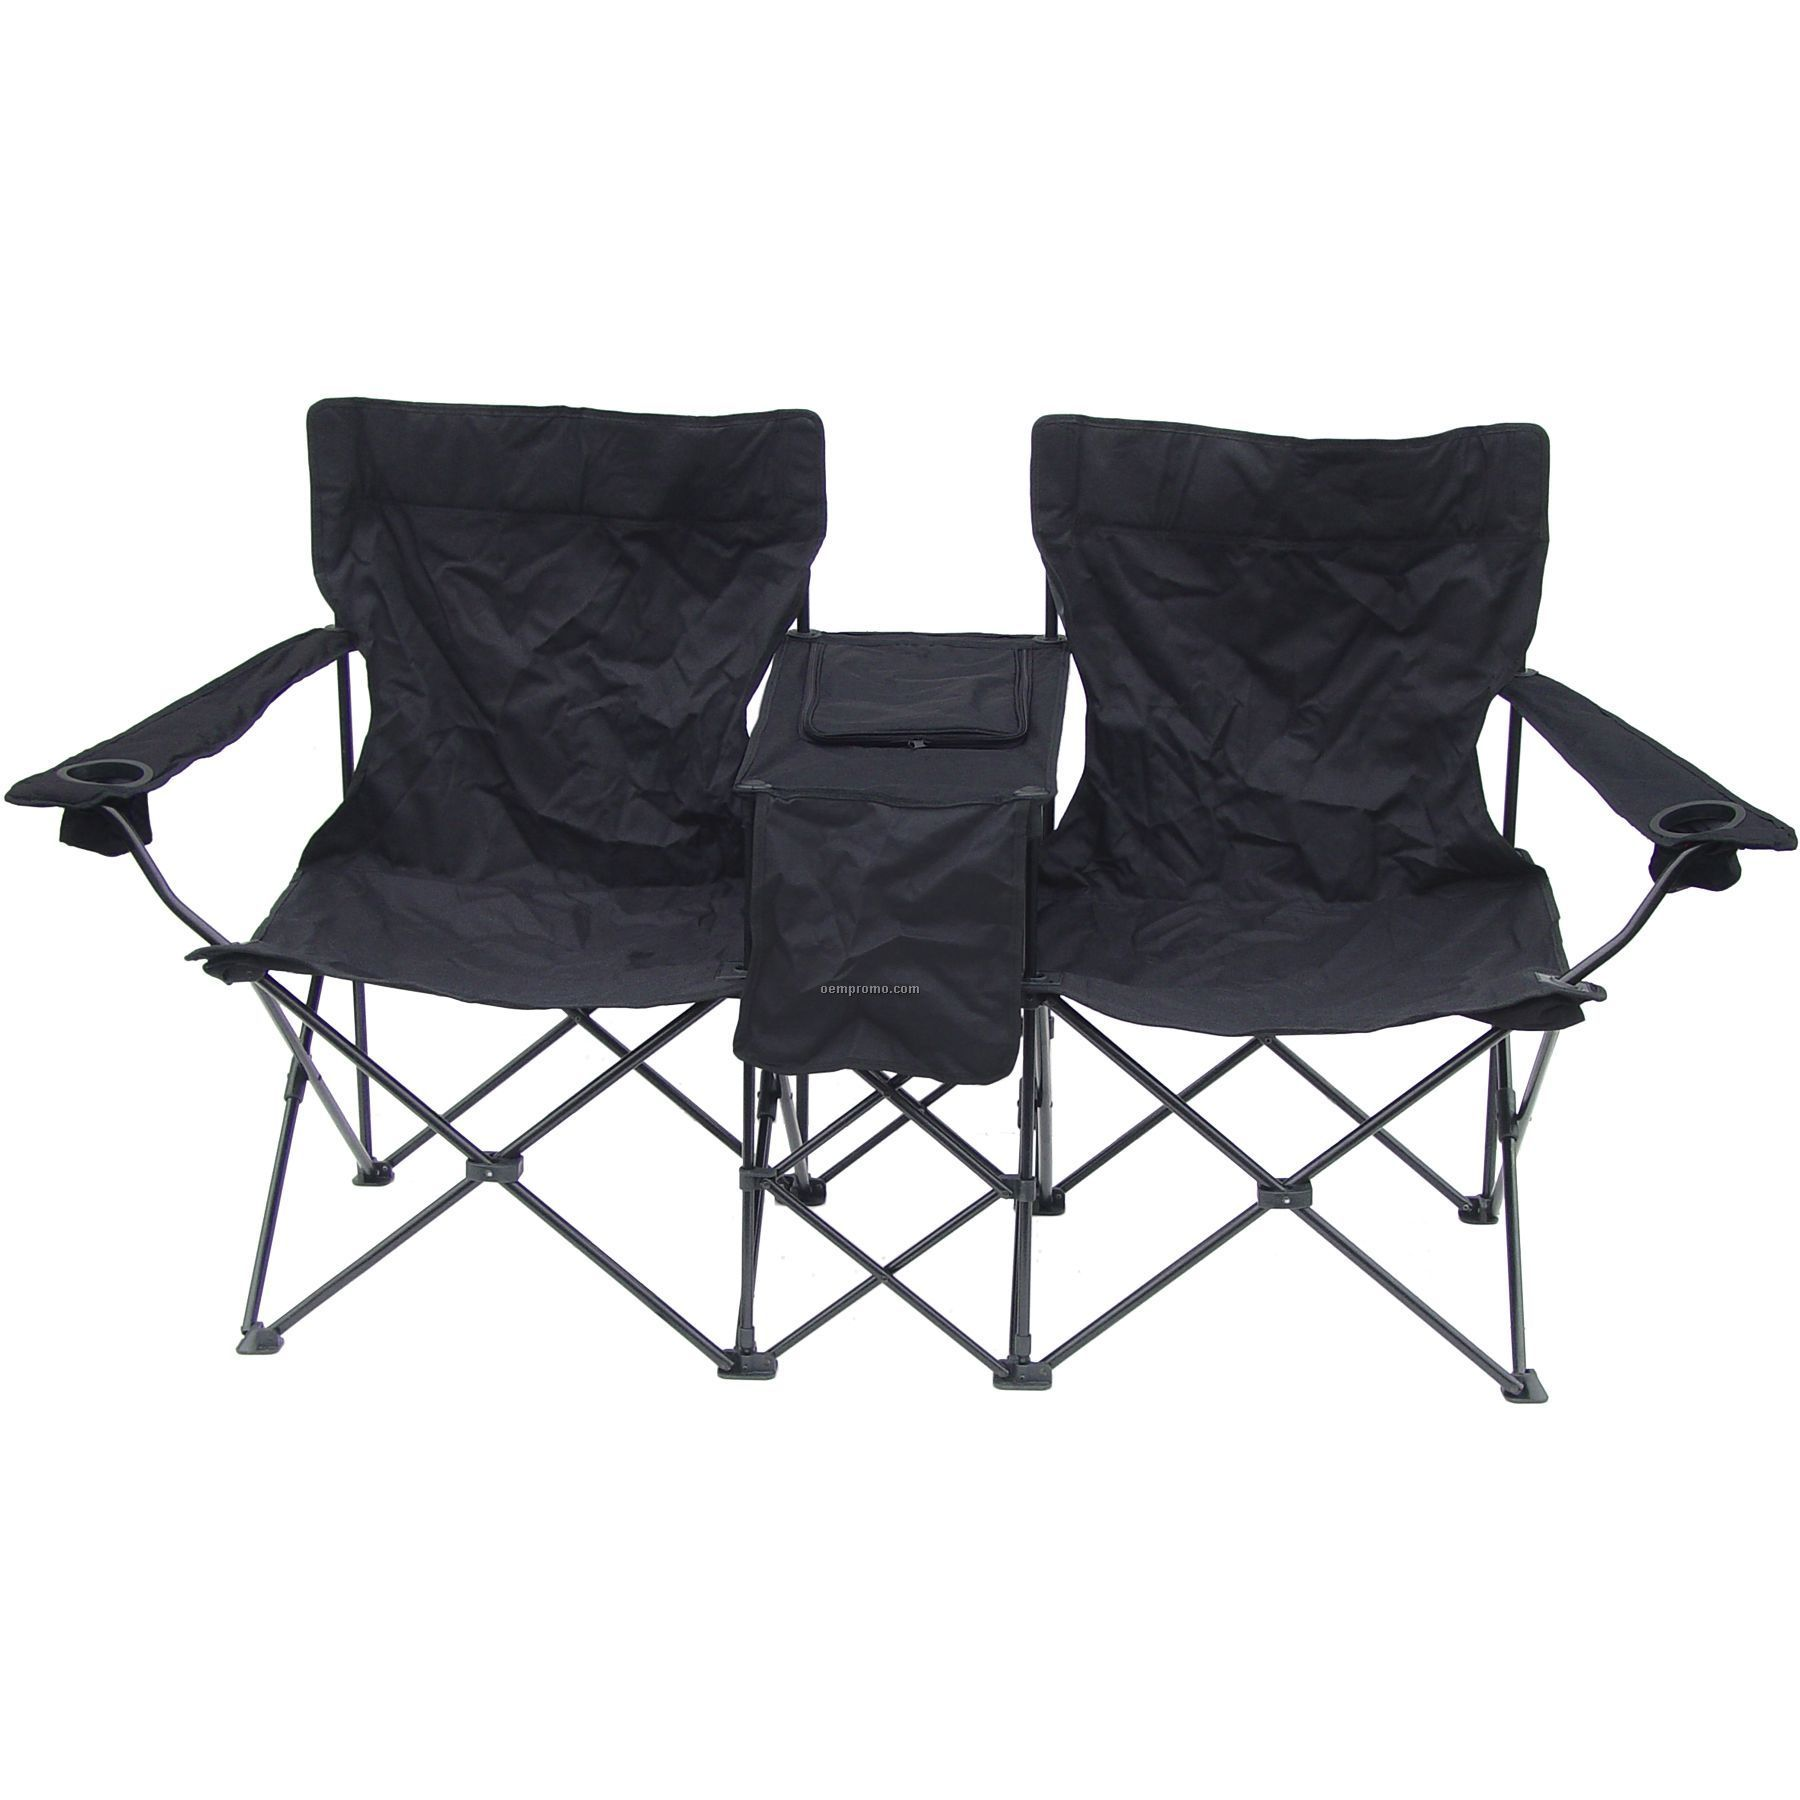 Direct Import Folding Double Chair With Center Table And Cooler